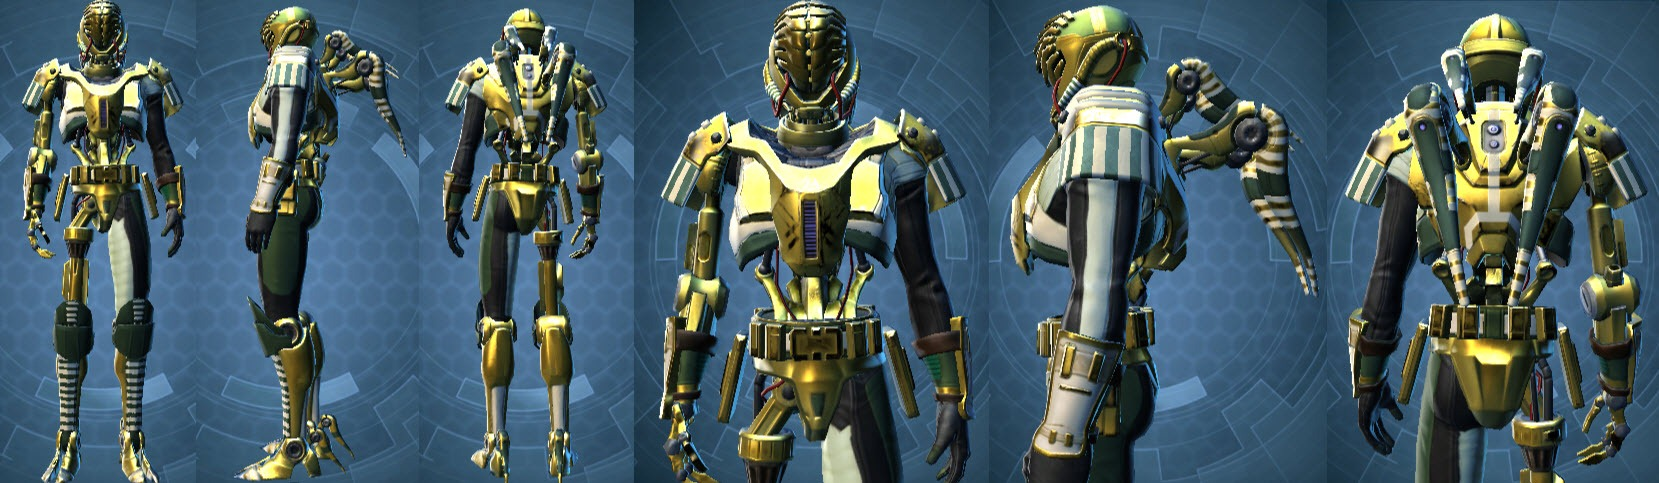 swtor-series-79-aureate-cybernetic-armor-set-male